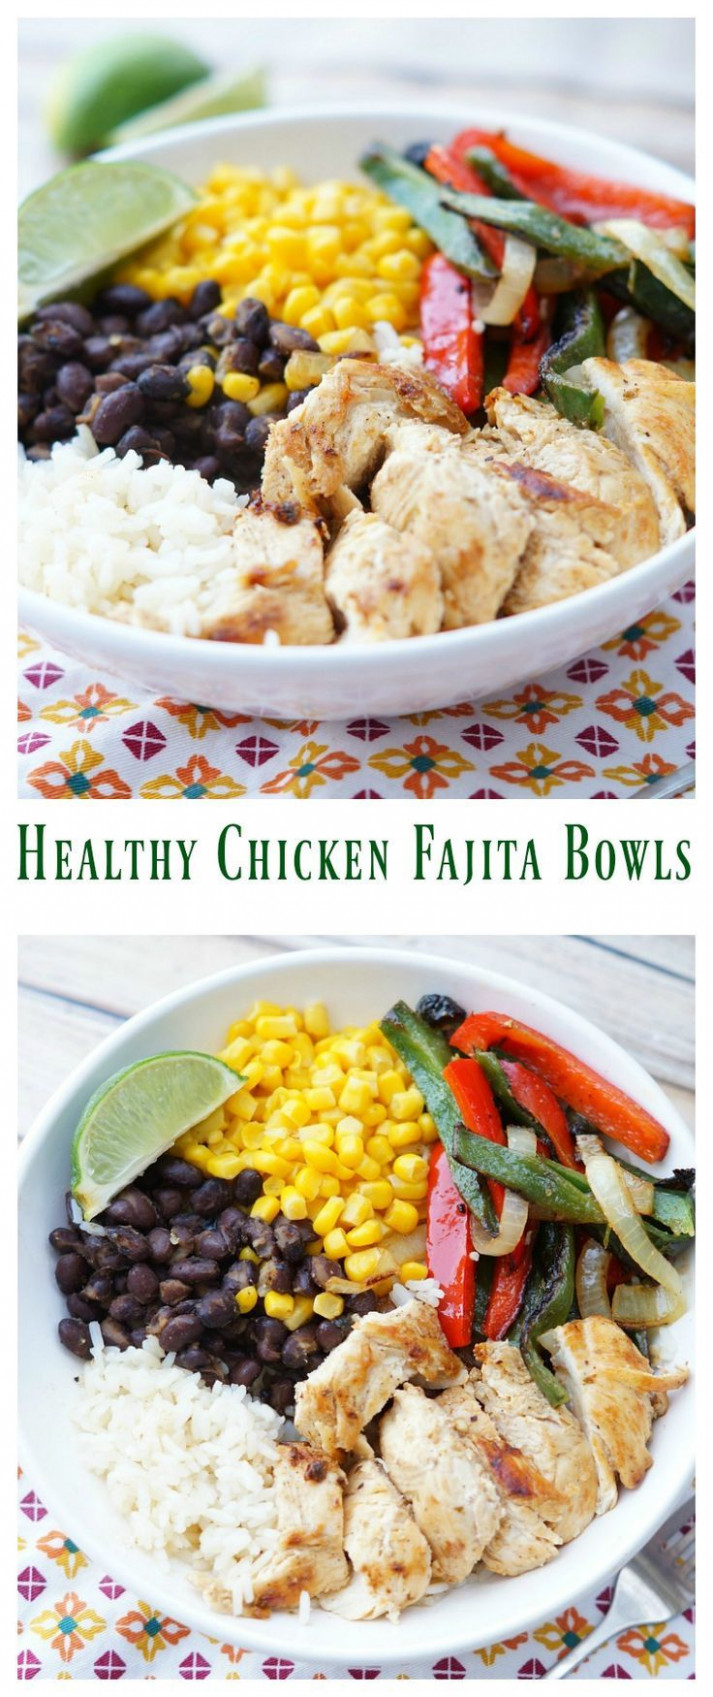 Healthy Chicken Fajita Bowls | Recipe | Healthy chicken ...